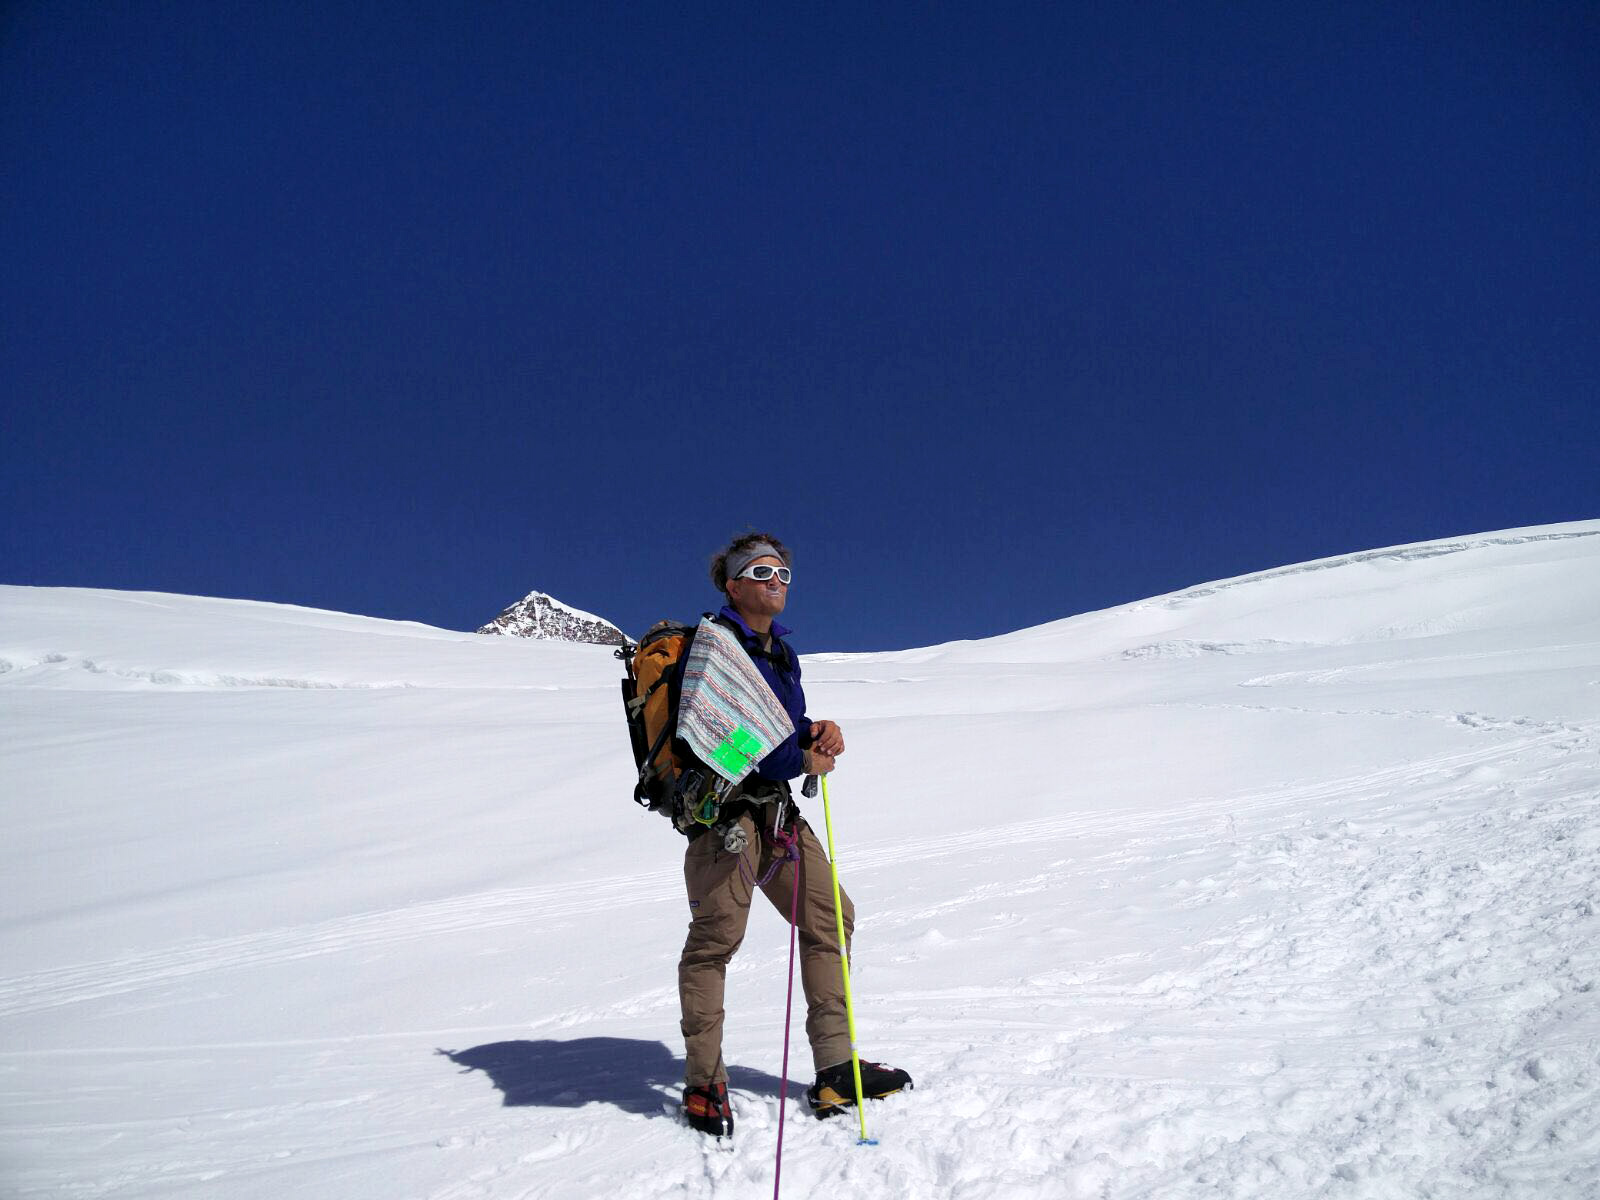 Tambo on Monte Rosa with superlight towel